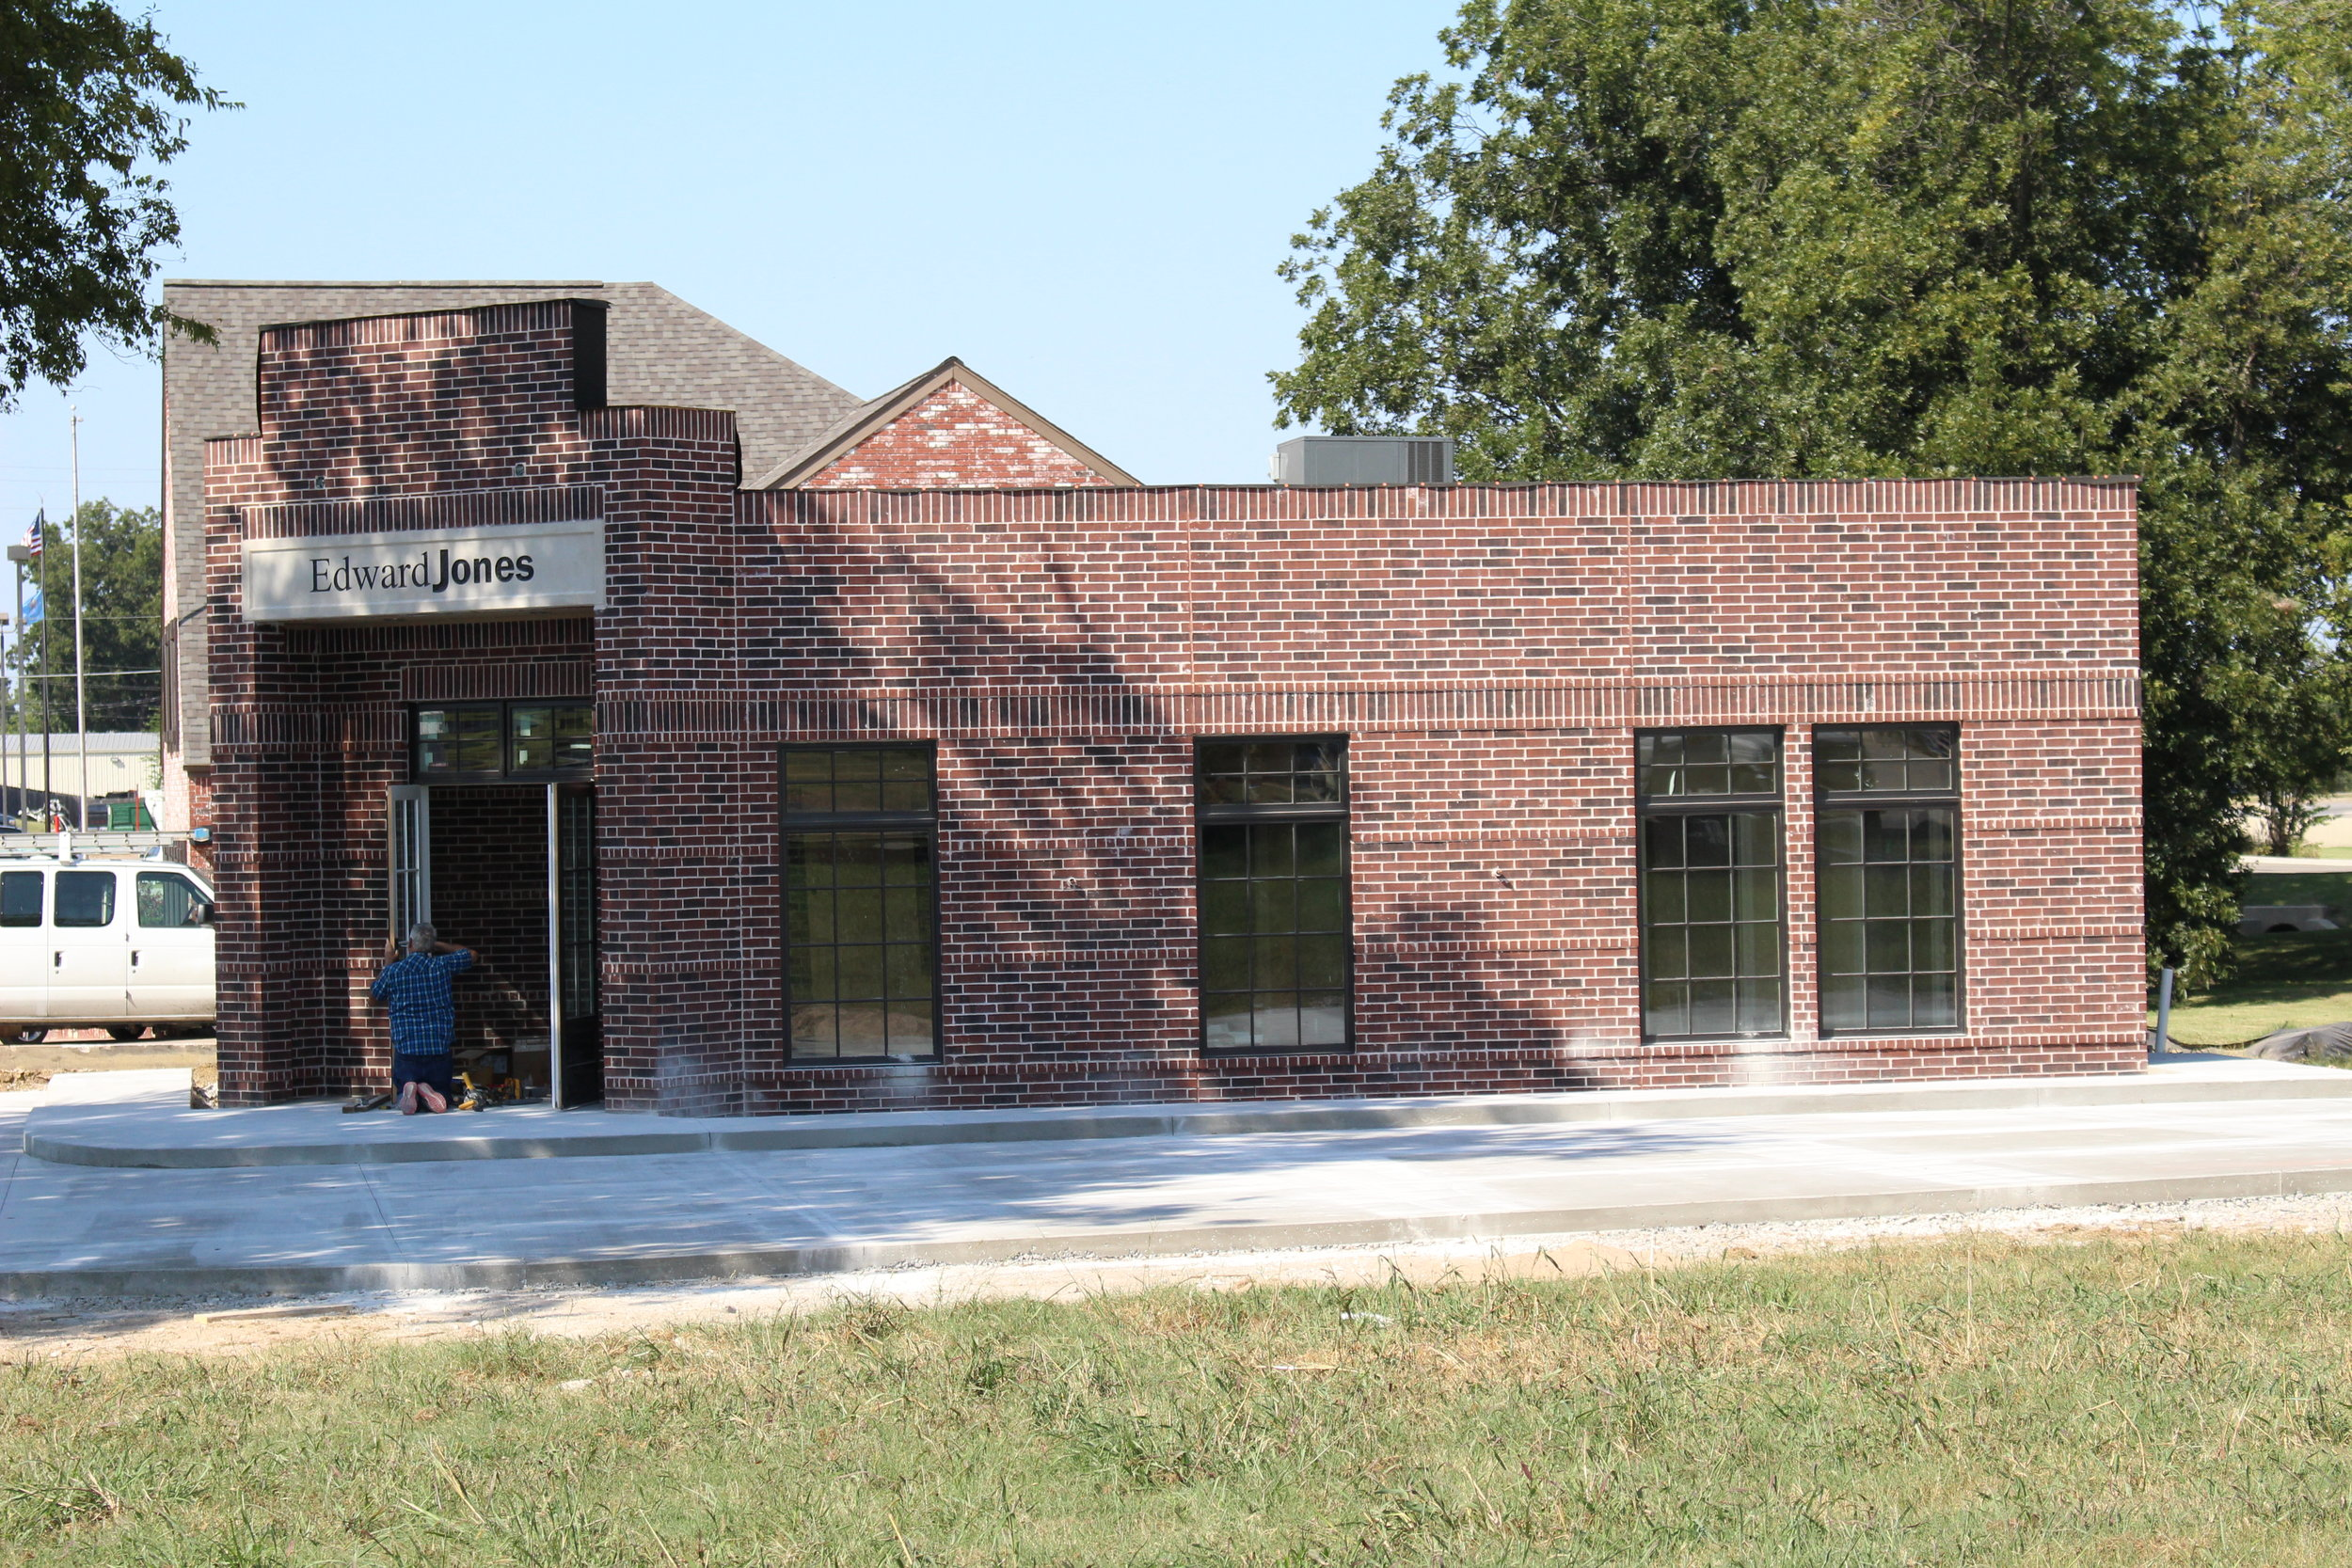 Edward Jones investments - prattville 3901 South 113th West Avenue